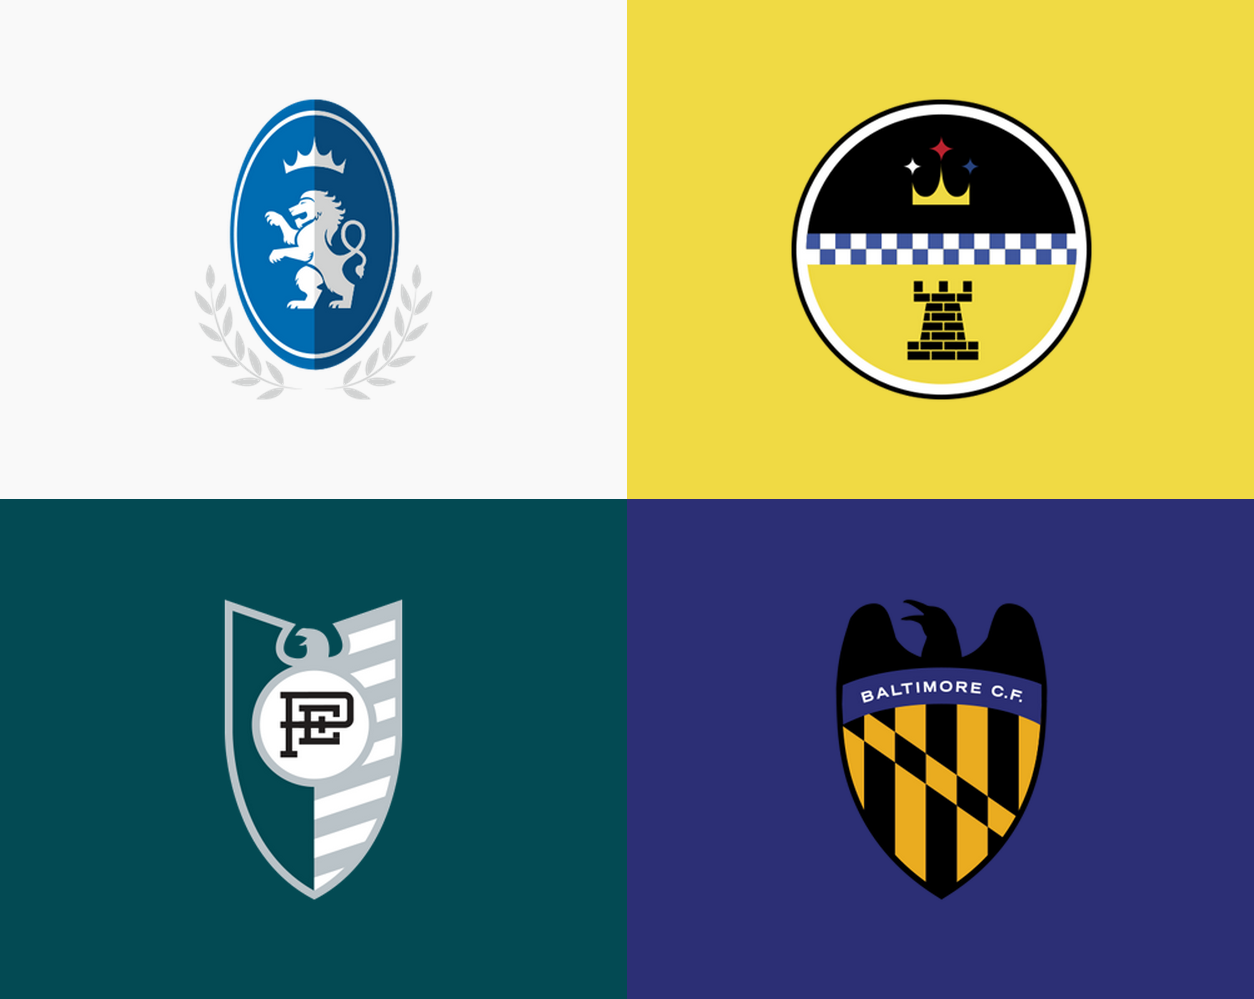 NFL Logos Redesigned to Look Like European Football (Soccer